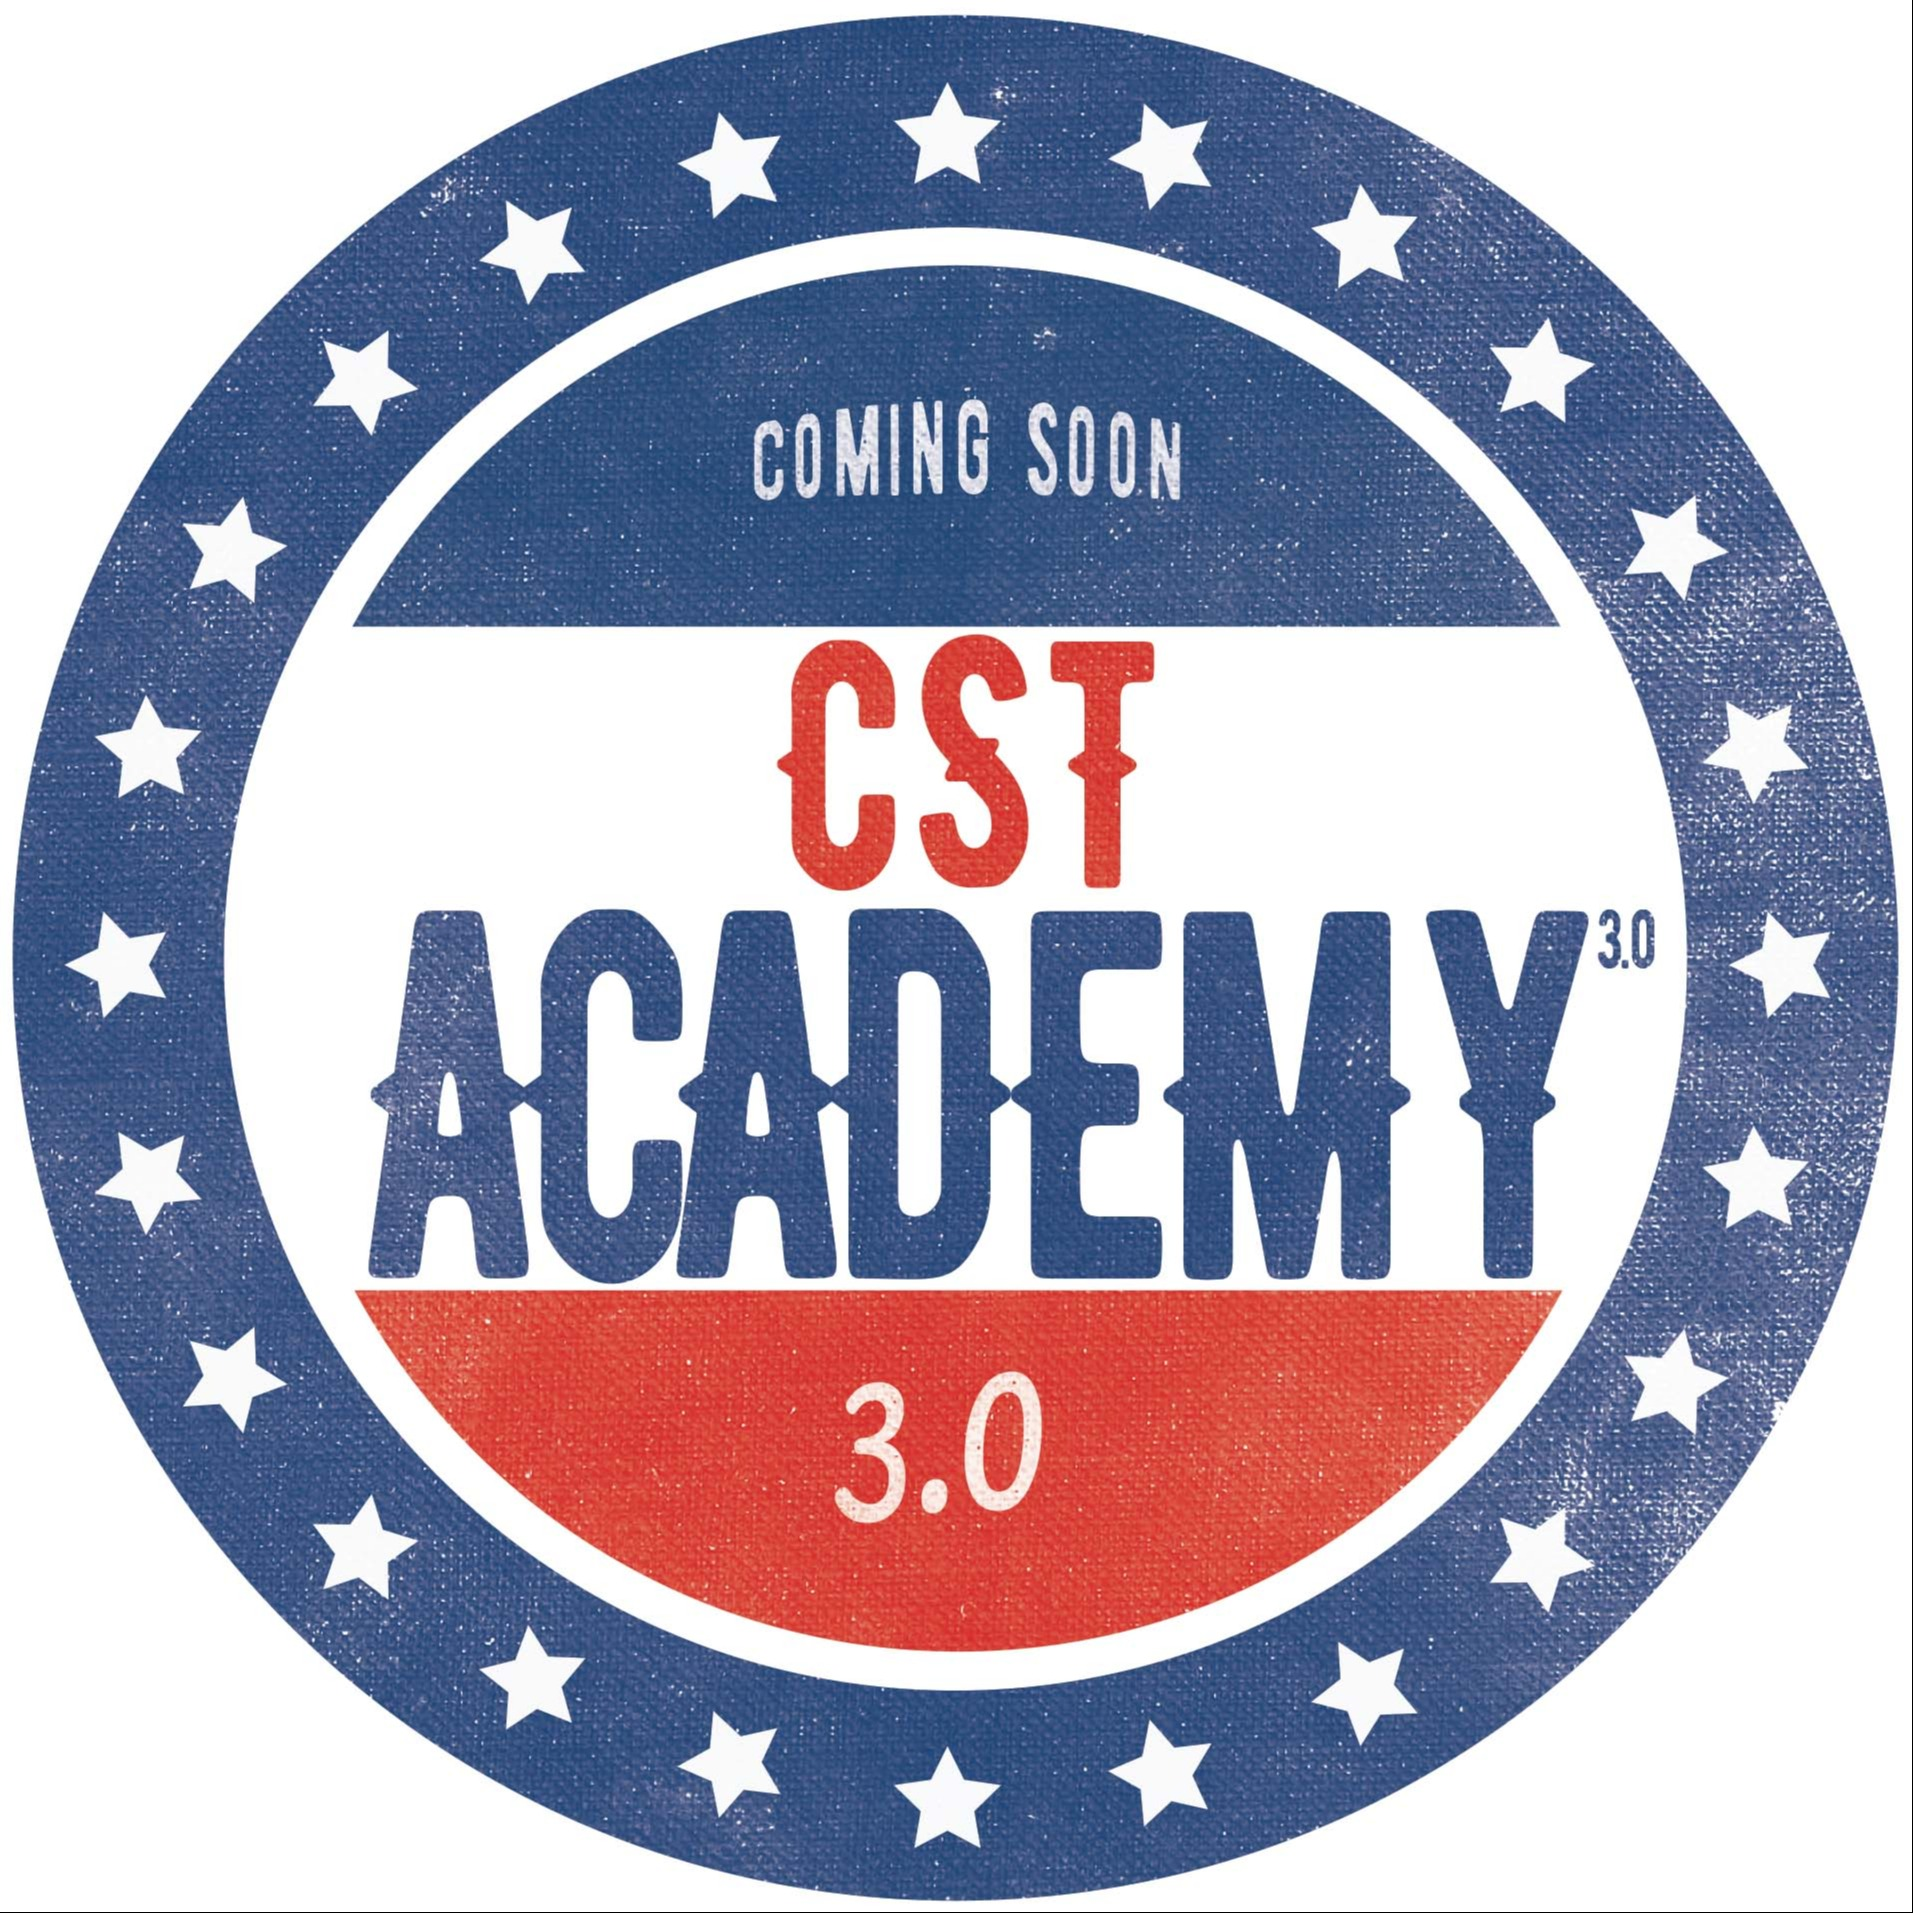 Subscribe CST ACADEMY news